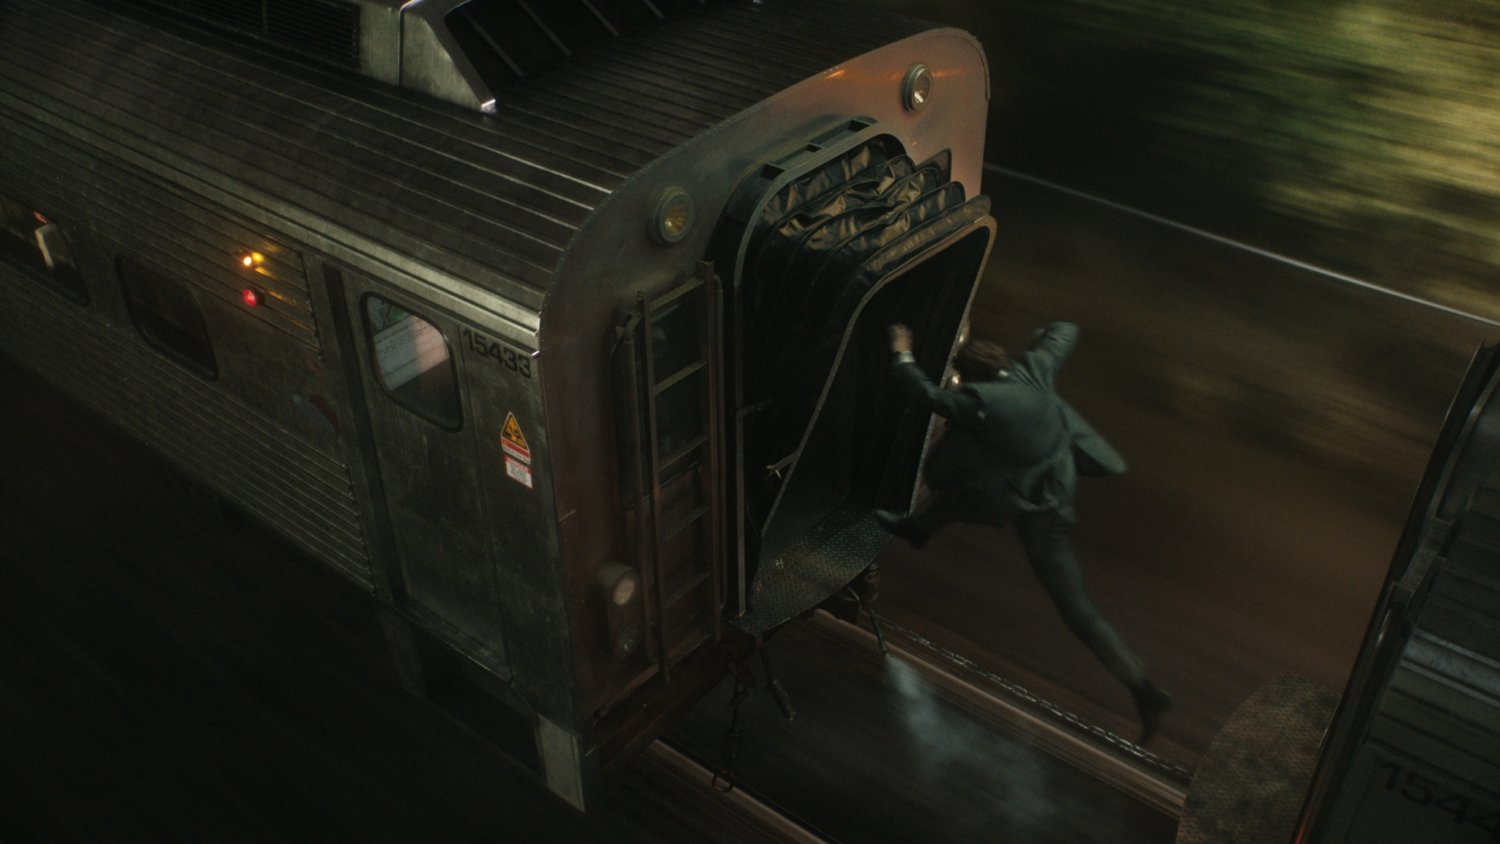 The Commuter image 3